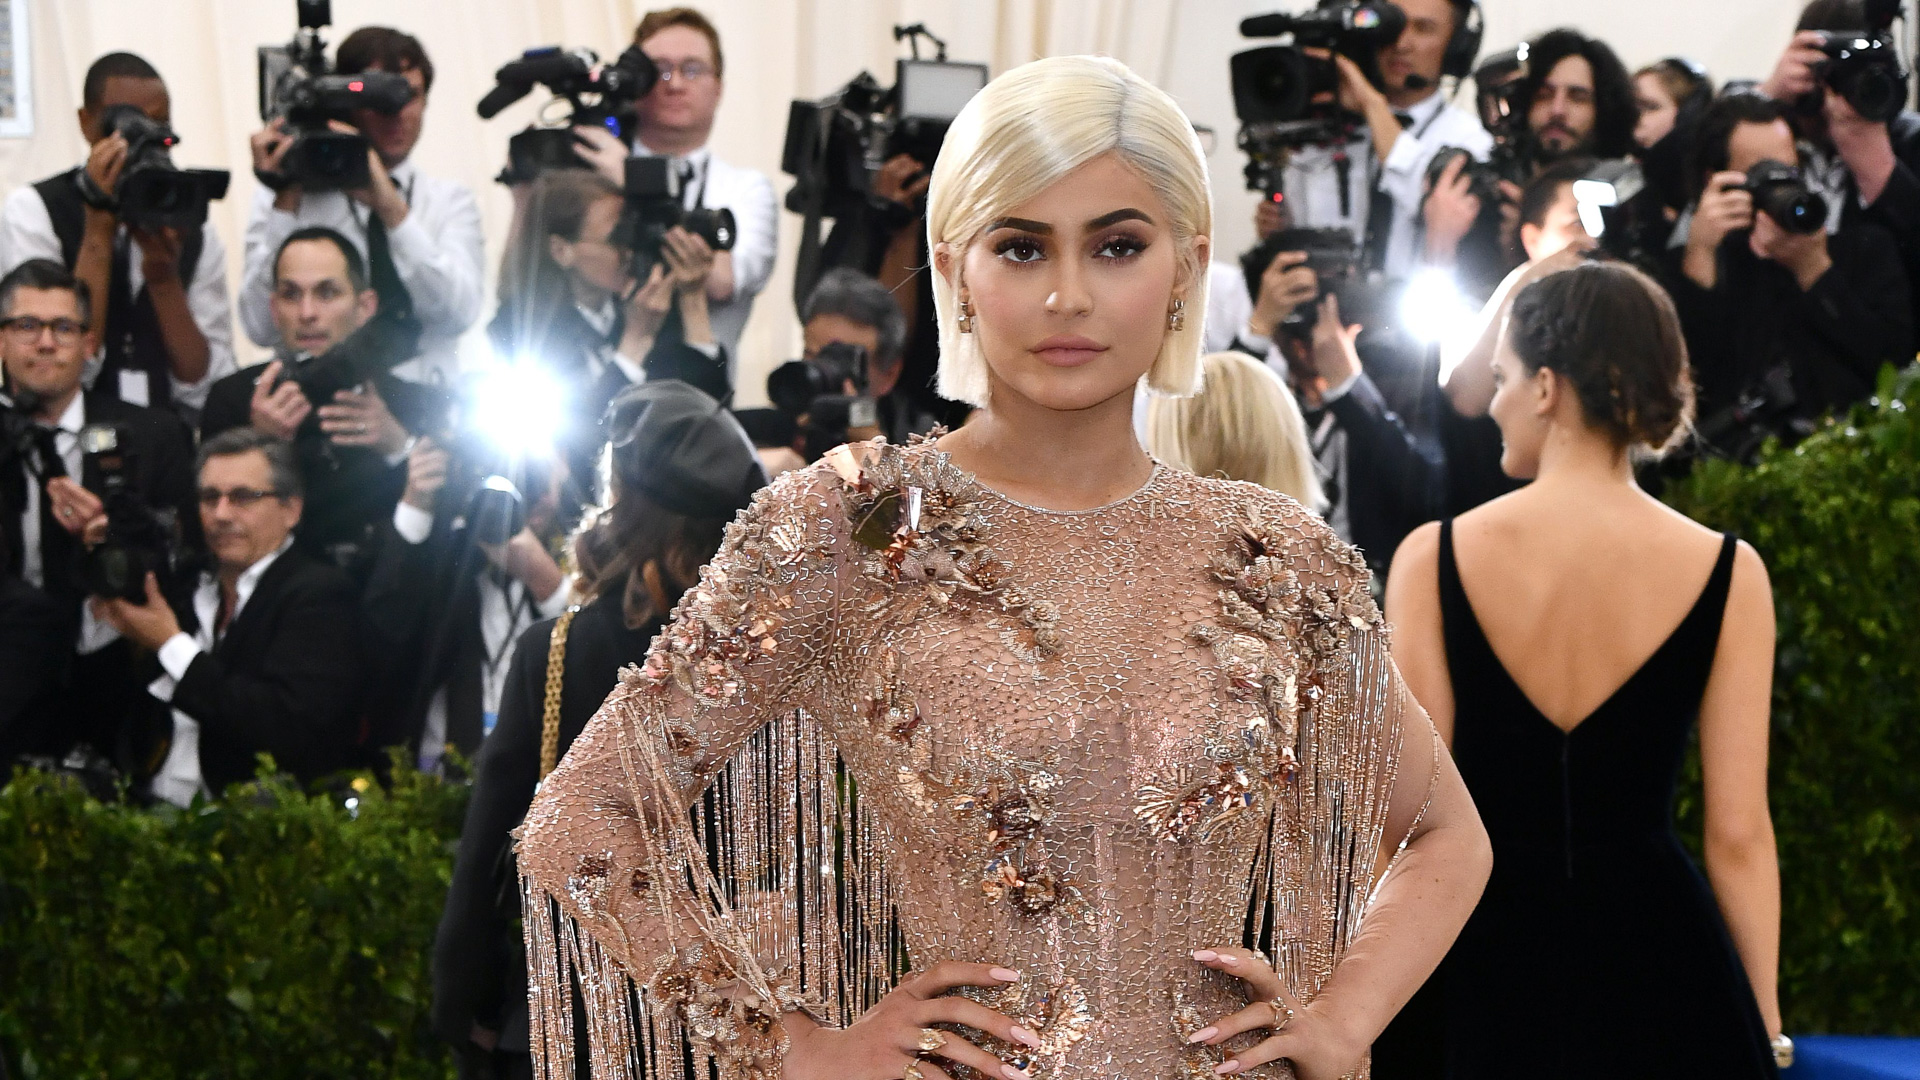 Mandatory Credit: Photo by Rob Latour/REX/Shutterstock (8773345jy) Kylie Jenner The Costume Institute Benefit celebrating the opening of Rei Kawakubo/Comme des Garcons: Art of the In-Between, Arrivals, The Metropolitan Museum of Art, New York, USA - 01 May 2017.